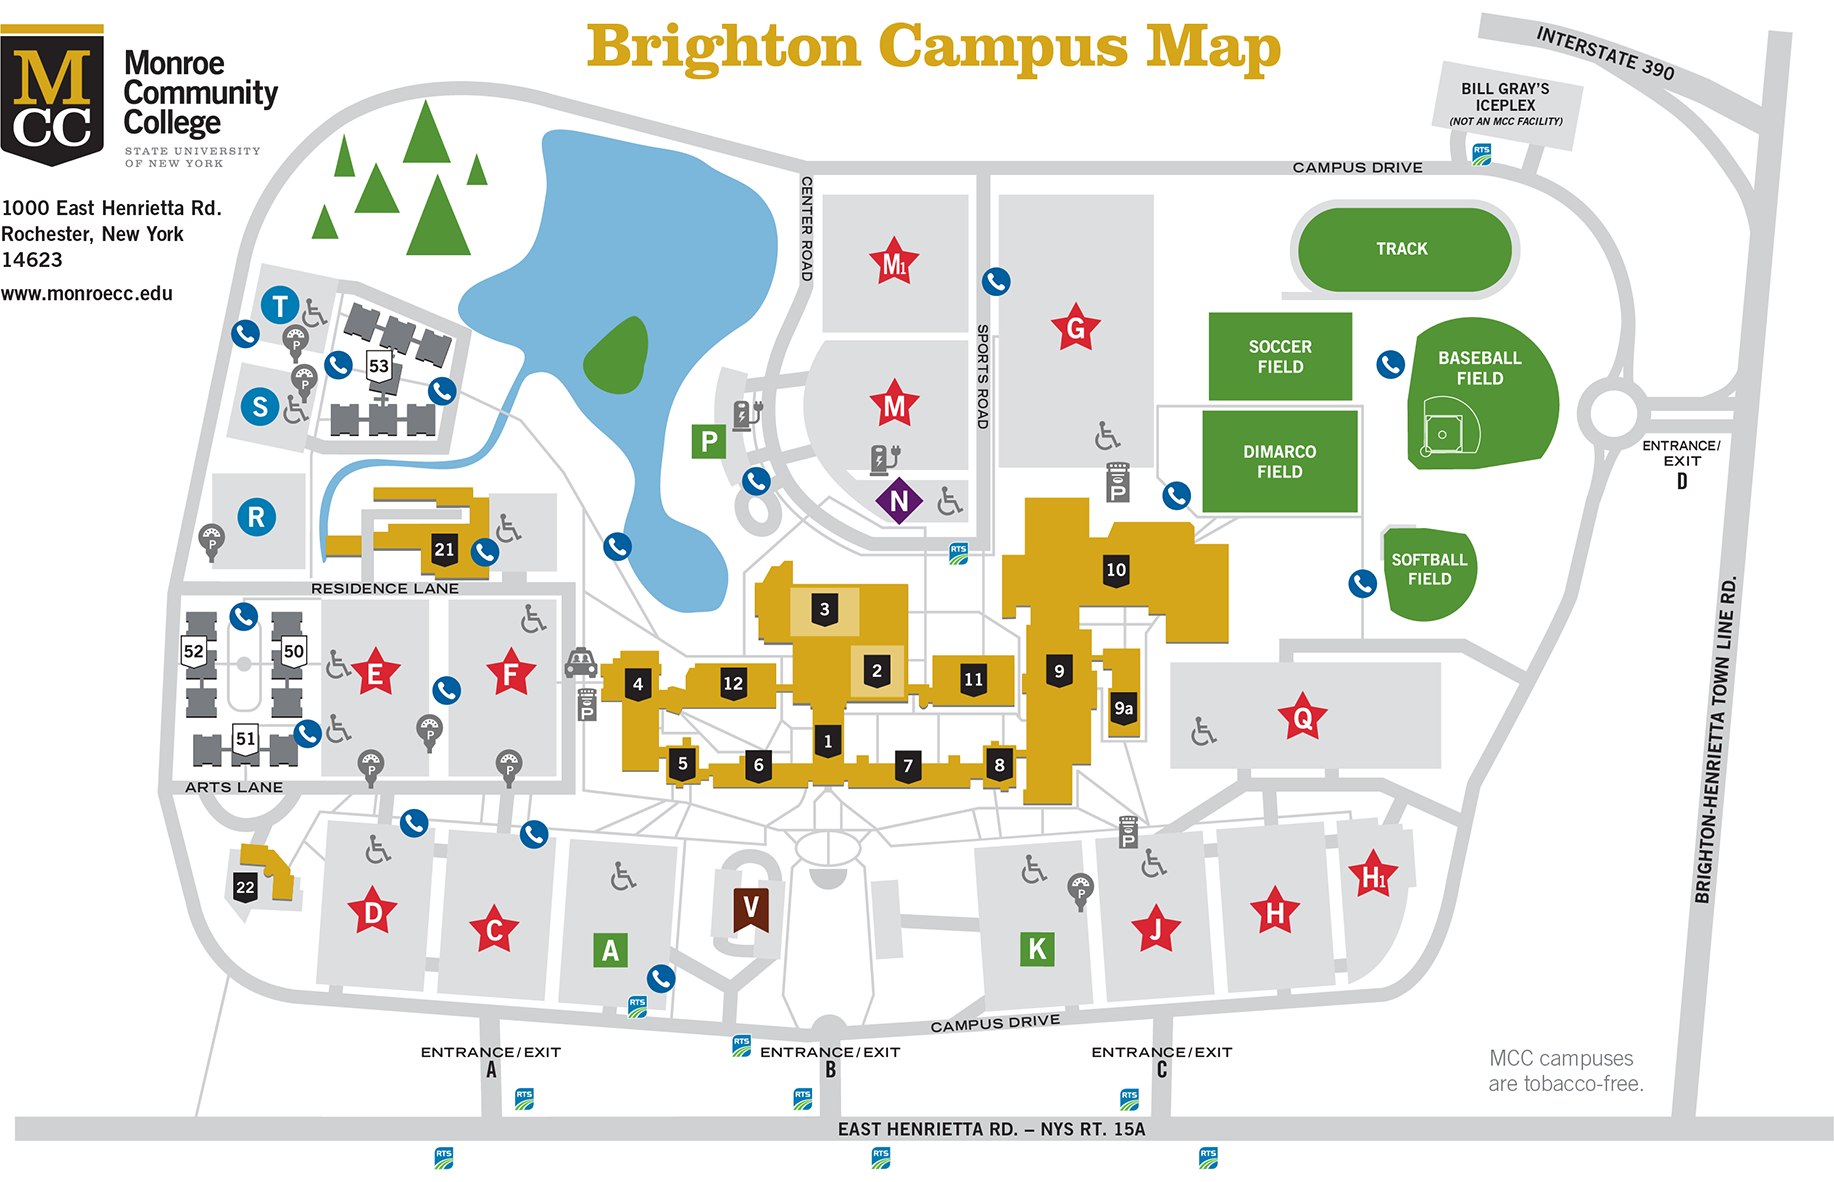 Brighton Campus | About MCC | Monroe Community College on custom map directions, basic map directions, teacher giving directions, google search, maps get directions, route planning software, yahoo! maps, web mapping, bing maps platform, maps used in foe, bing maps, get walking directions, print maps with directions, satellite map images with missing or unclear data, maps north ogden, asheville nc map directions, nokia maps, google latitude, maps live of my house, easy road map directions, driving directions, cardinal directions, mapquest directions, maps google maps, maps distances ohio-indiana, google earth, maps puerto rico drivers, maps of seven deadly sins in america, follow directions, google voice, google map maker, maps espanol,